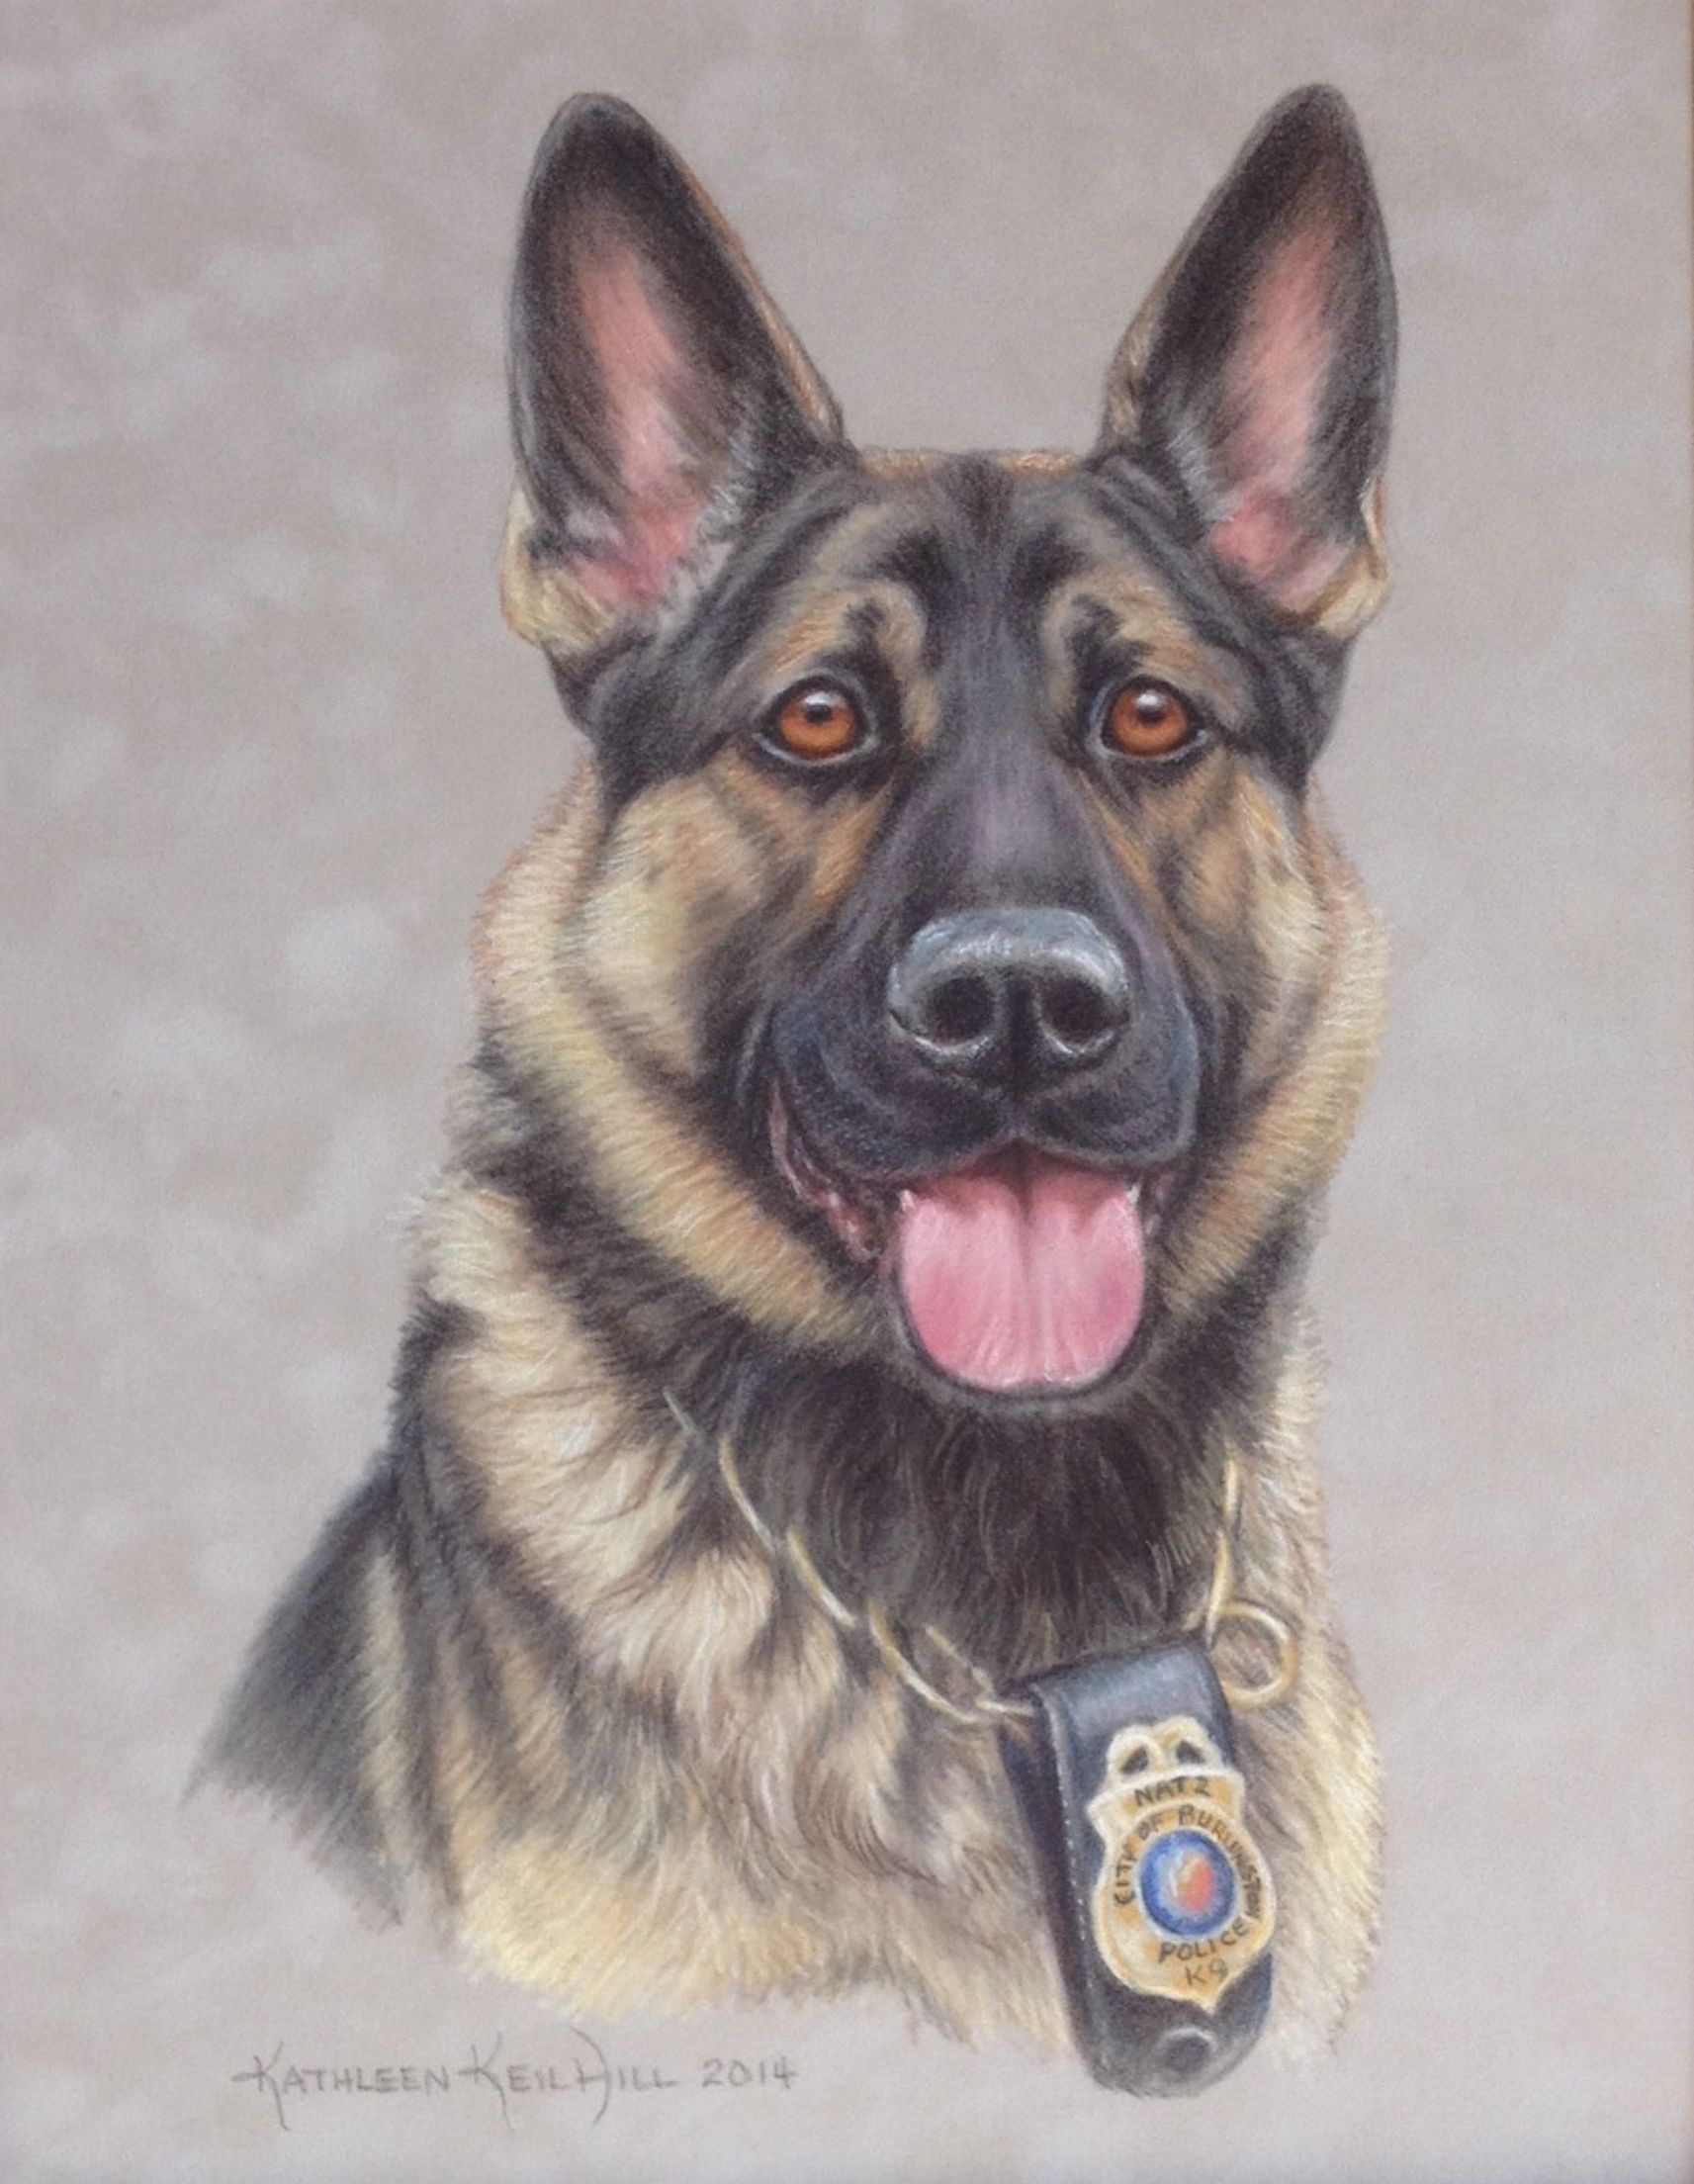 this beautiful dog was the special partner of a police officer